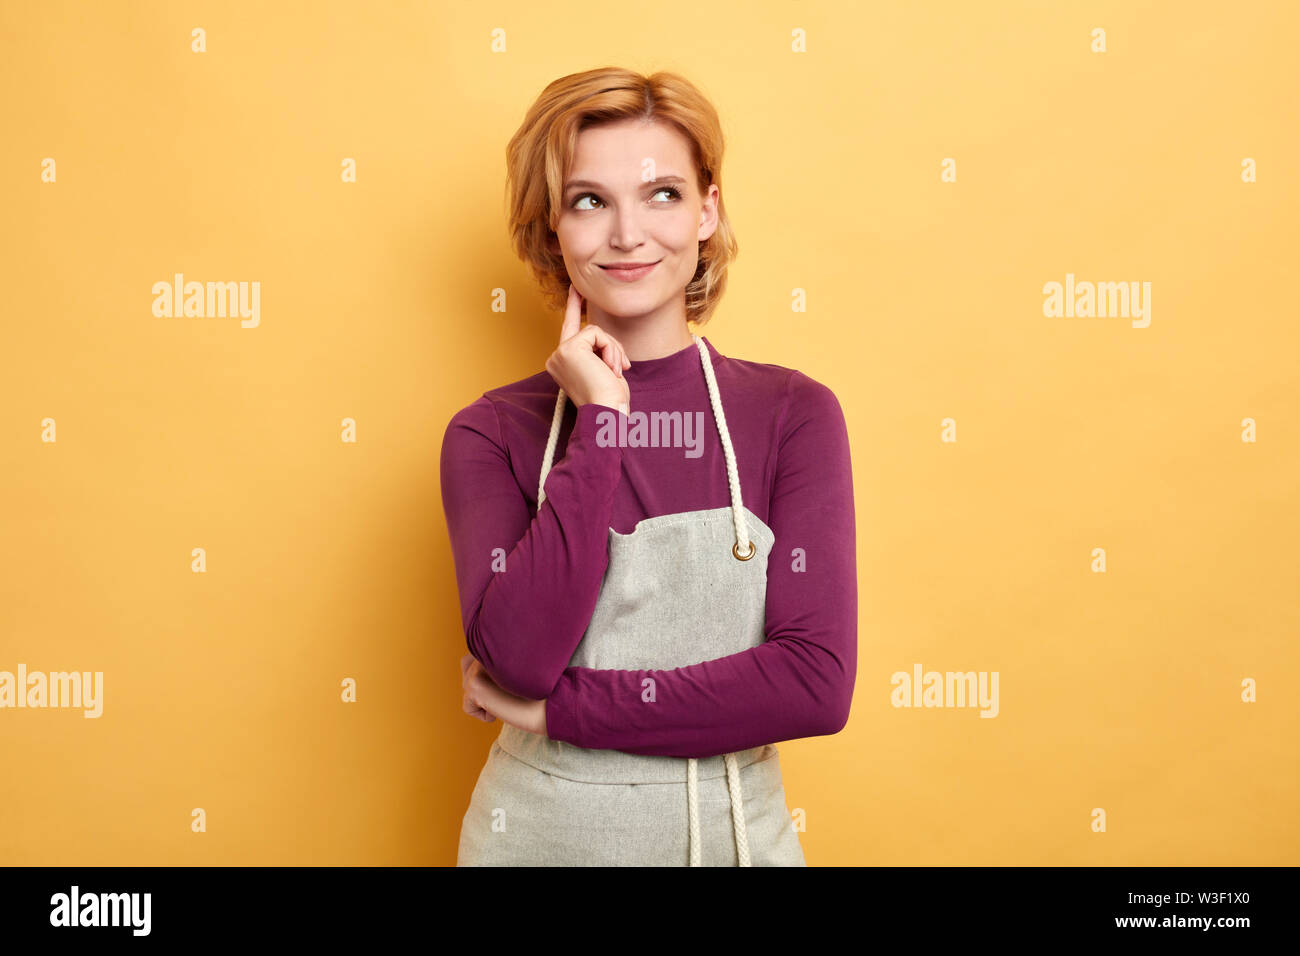 cunning housewife with a finger on her chin looking up thinking about her business, isolated yellow background, studio shot, copy space. idea, plan, - Stock Image